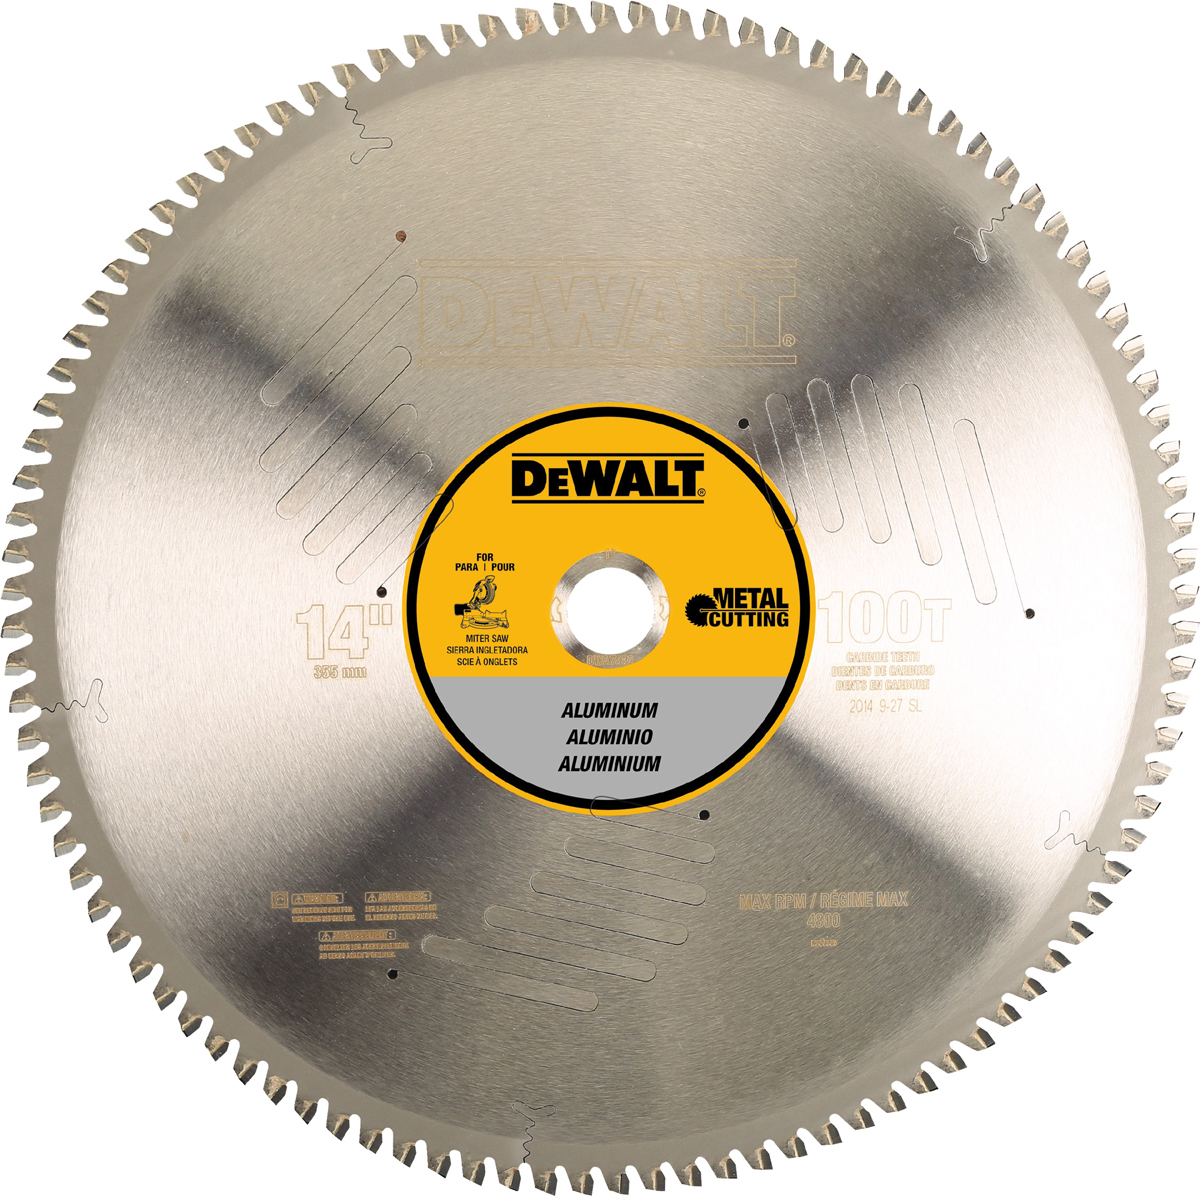 Airgas dewdwa7889 dewalt 14 100t carbide circular saw blade dewalt 14 greentooth Choice Image